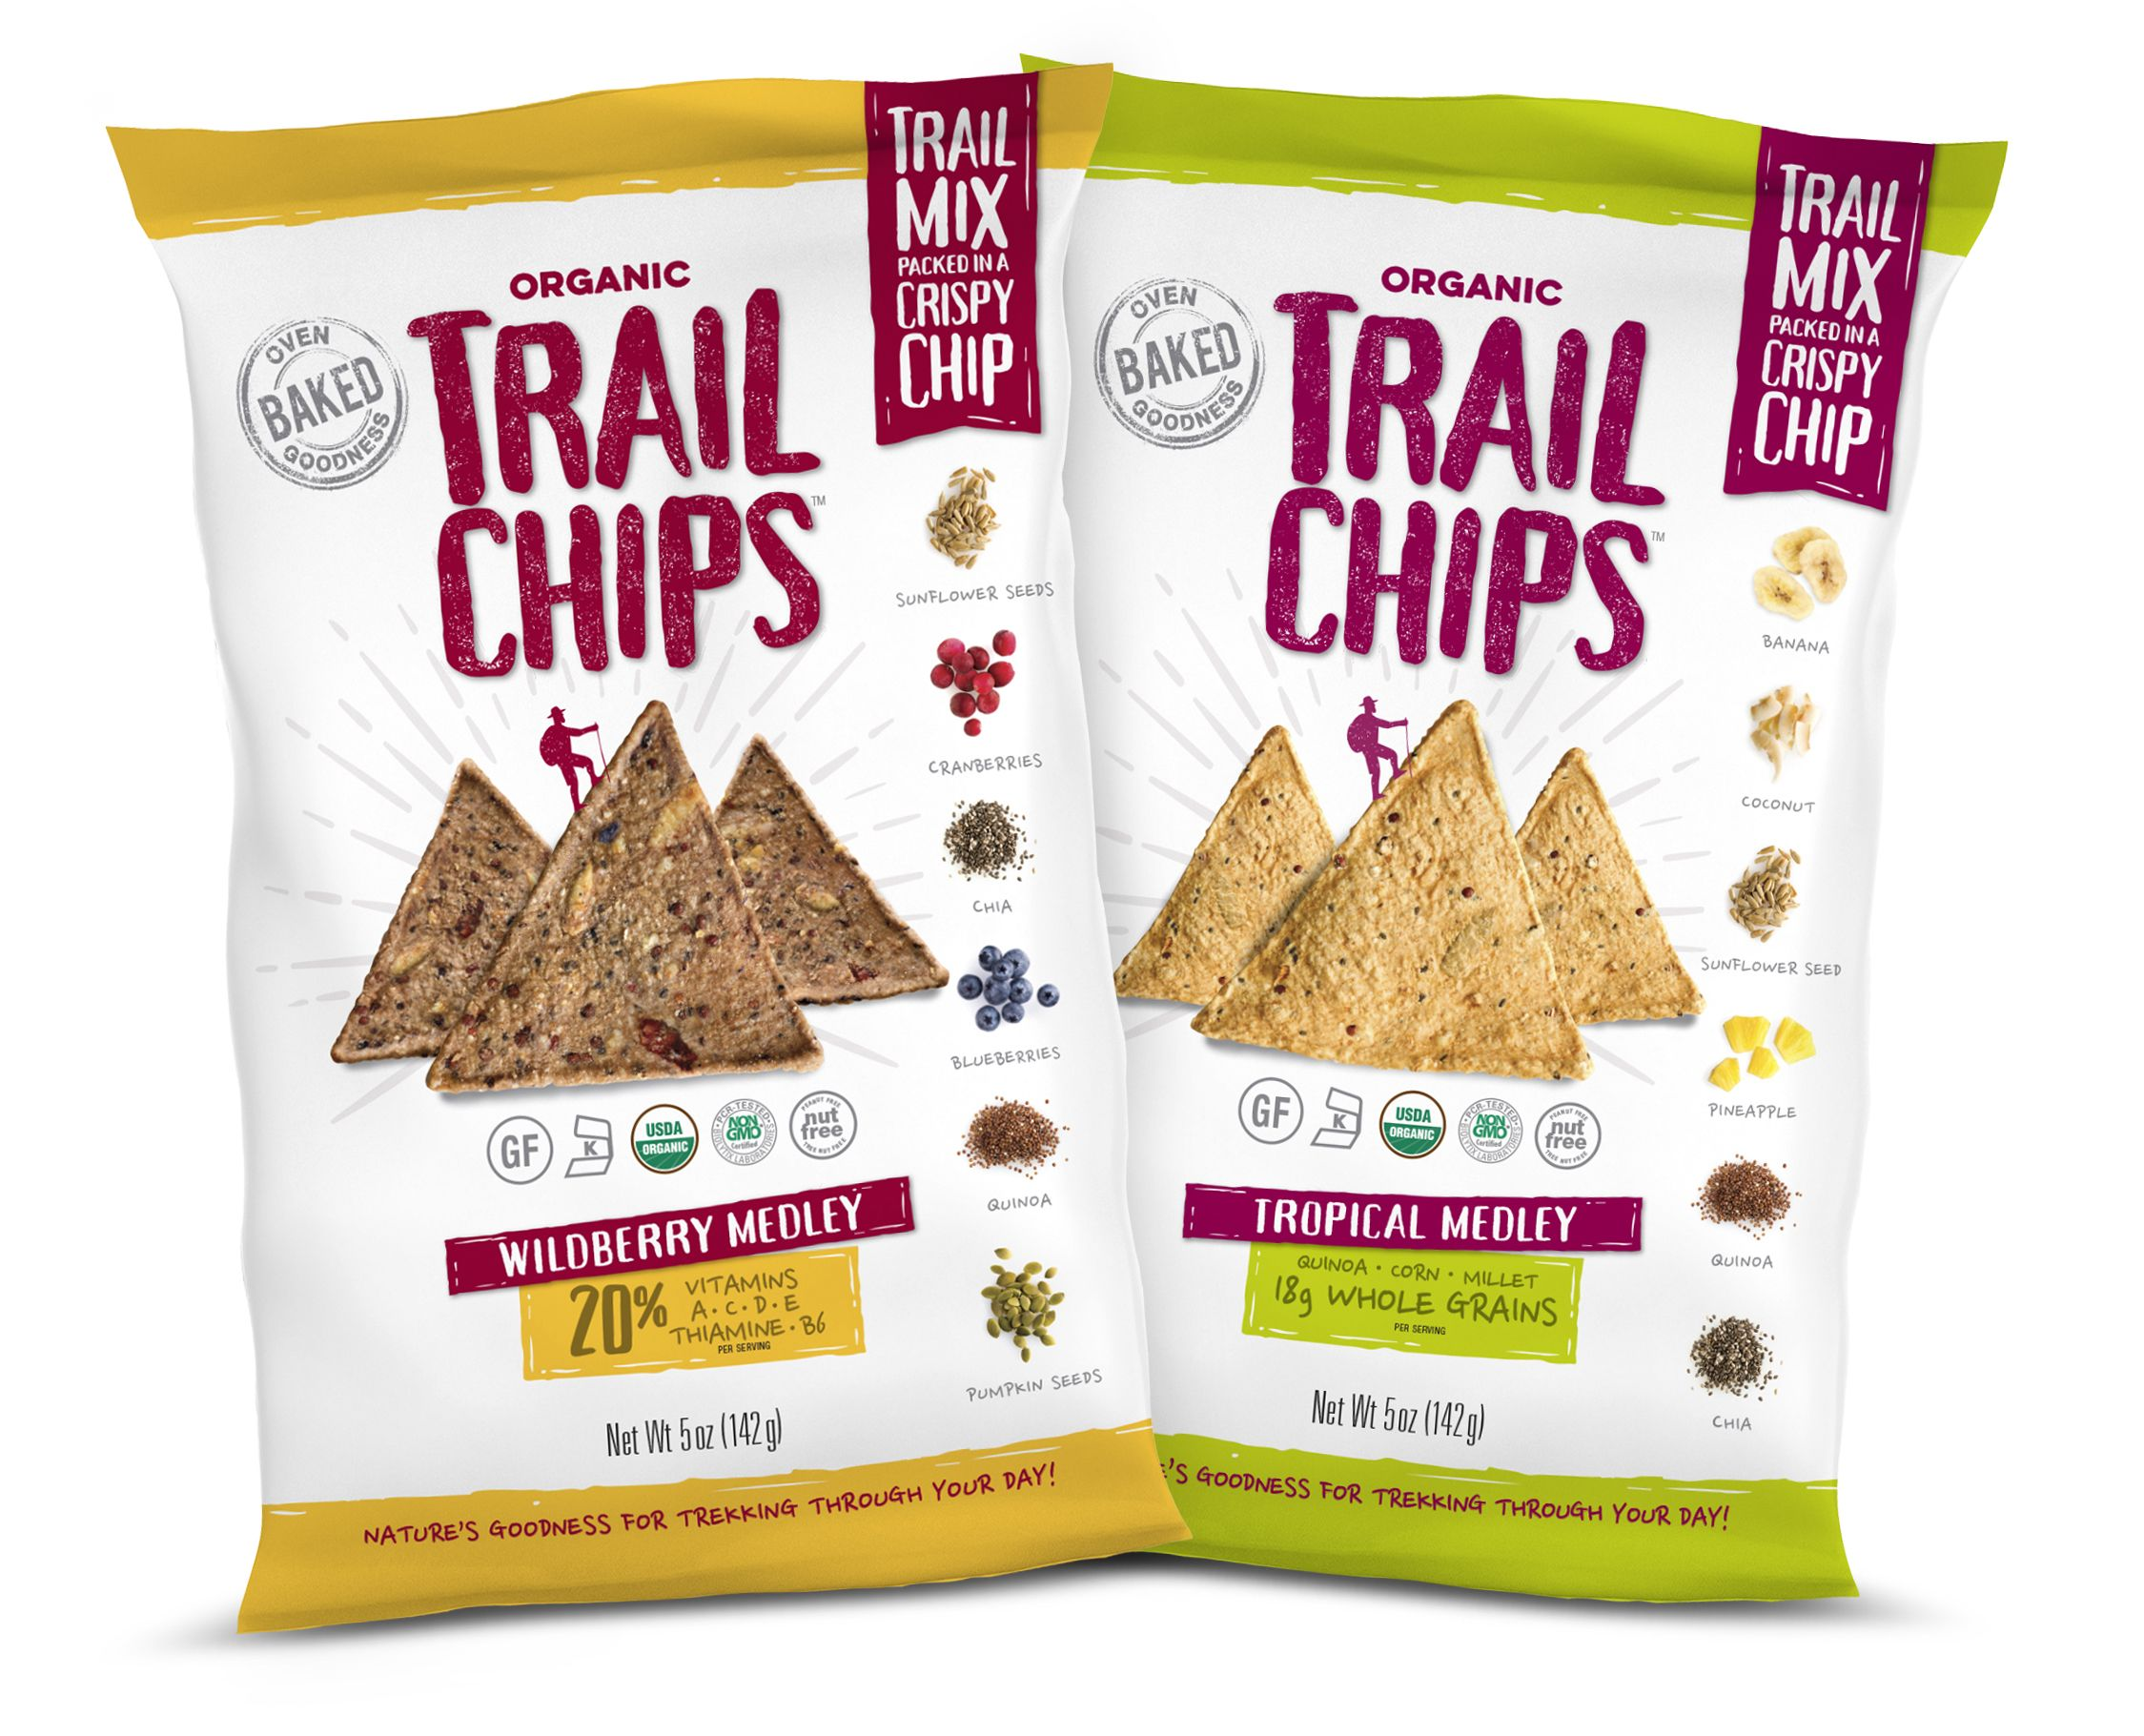 Coming soon to a store near you! Think trail mix packed in